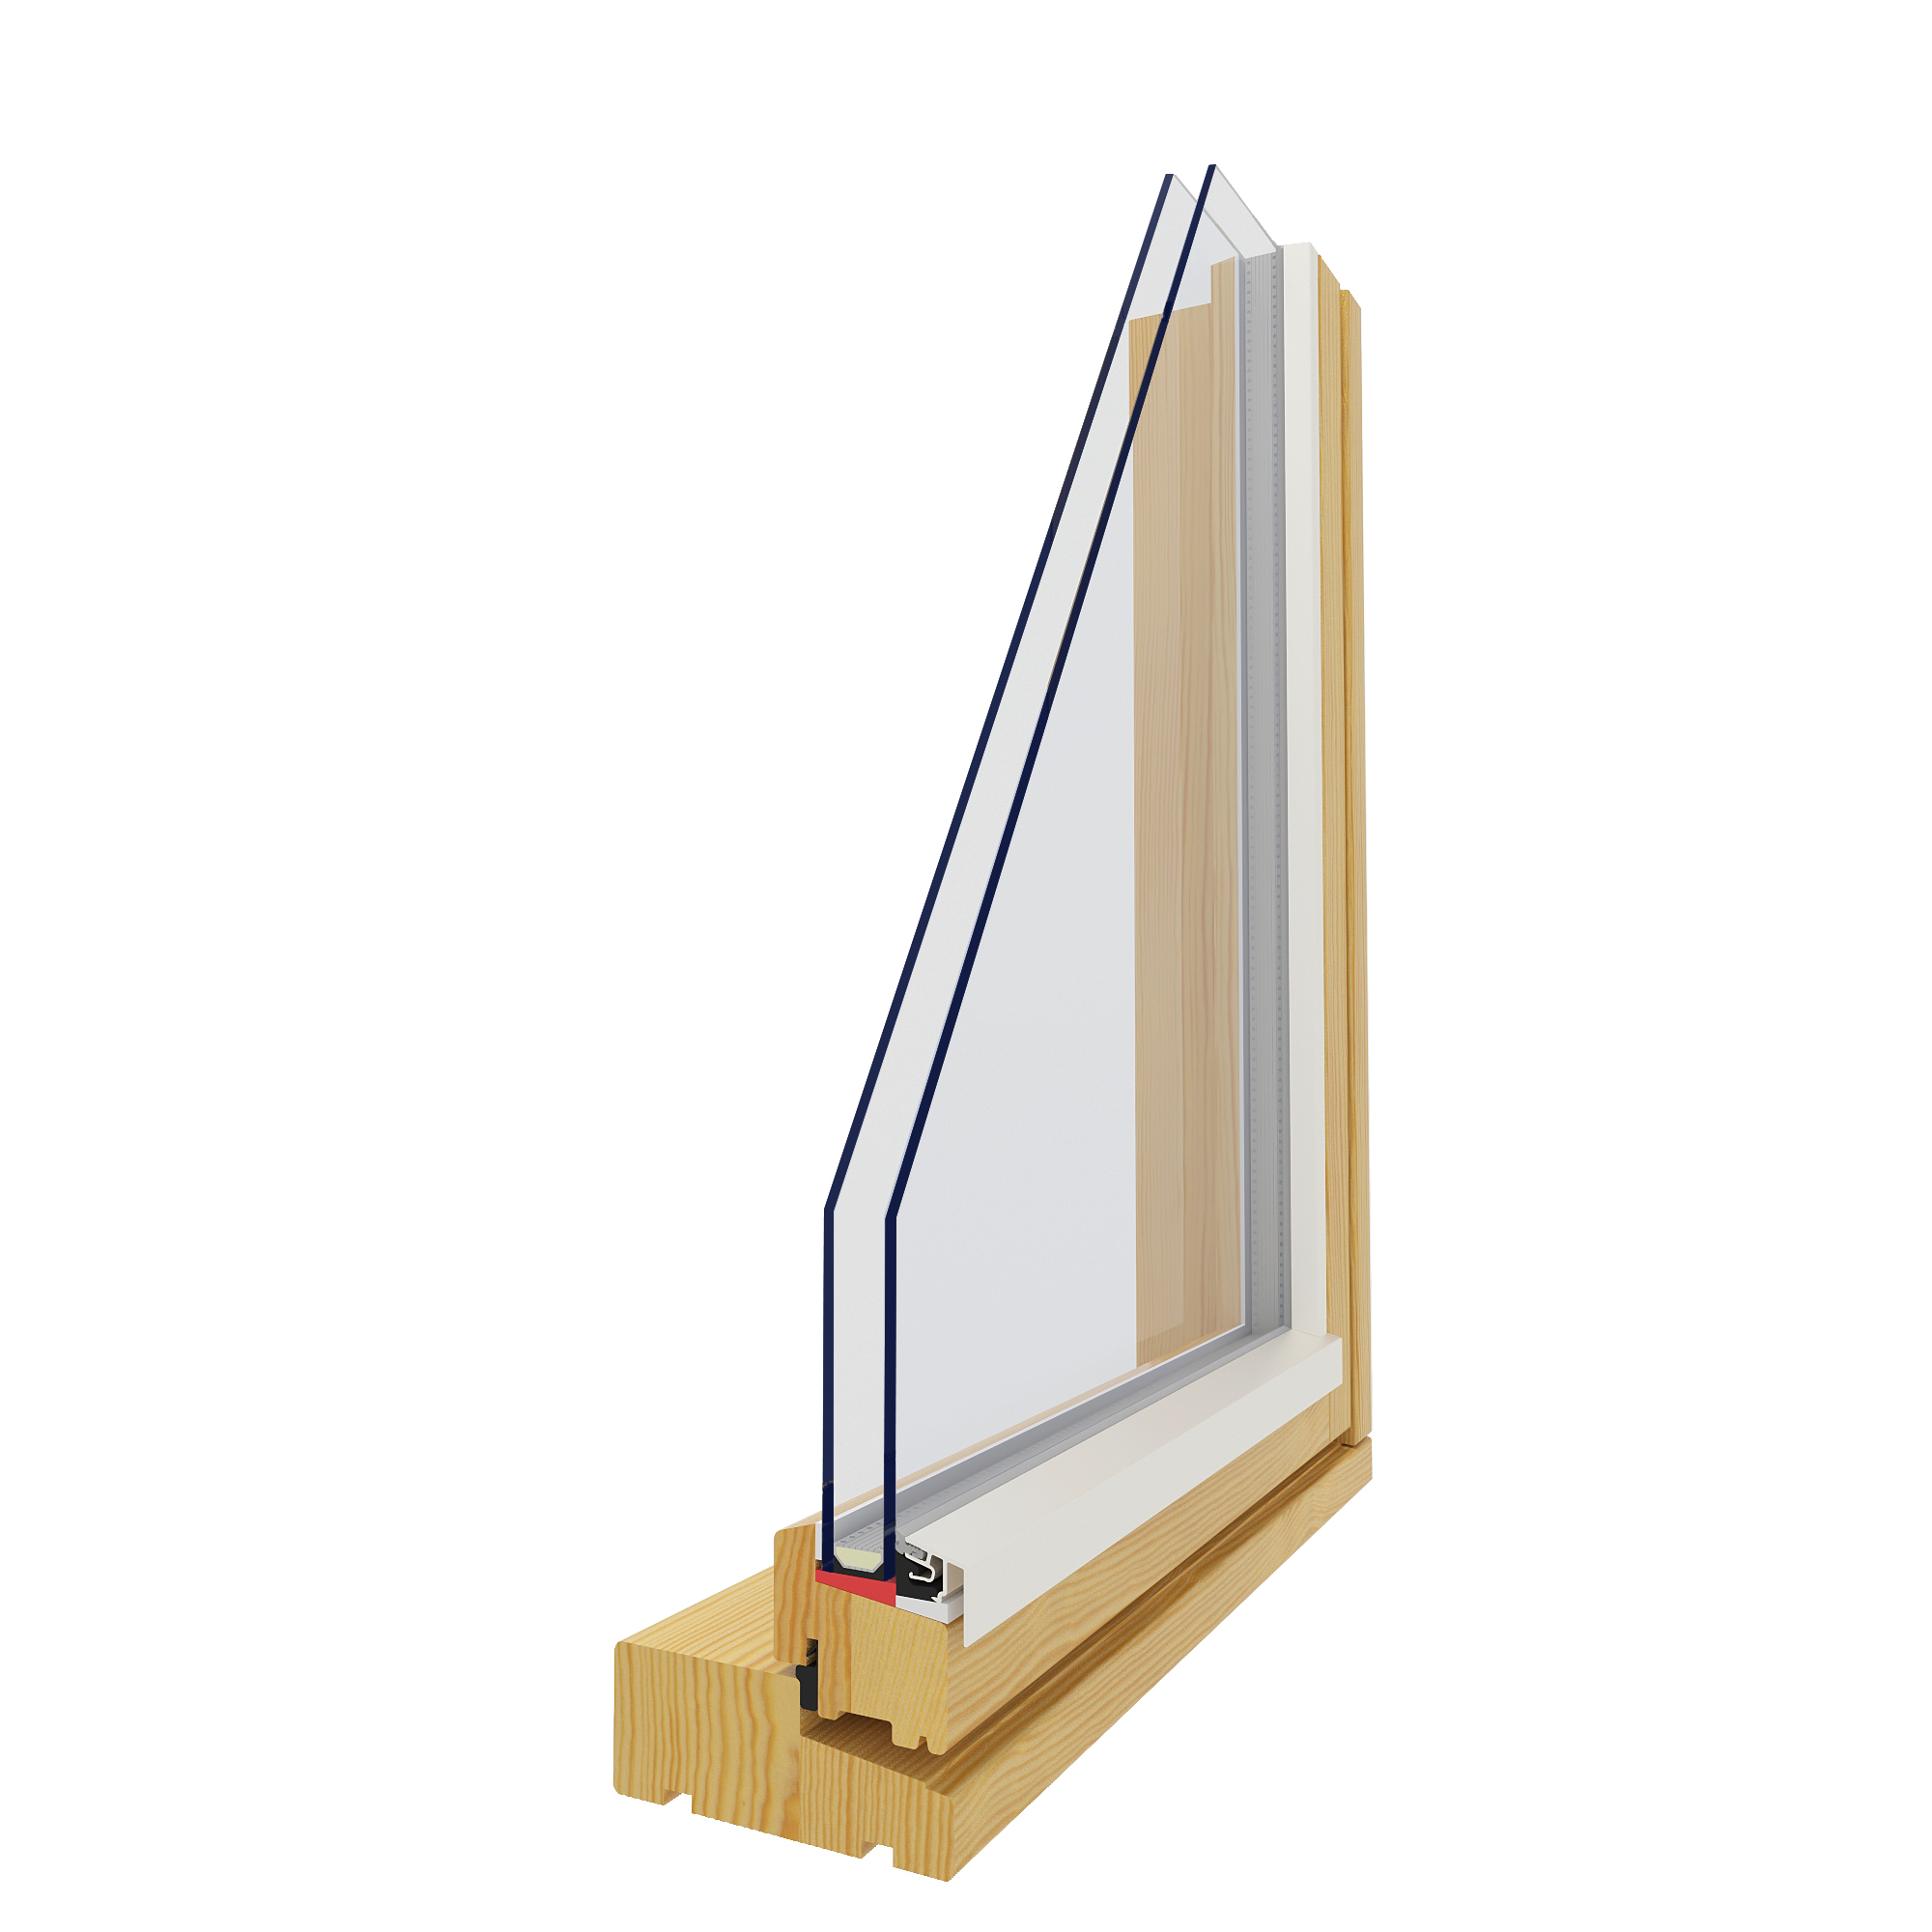 Timber Windows ECO NORDIC N78